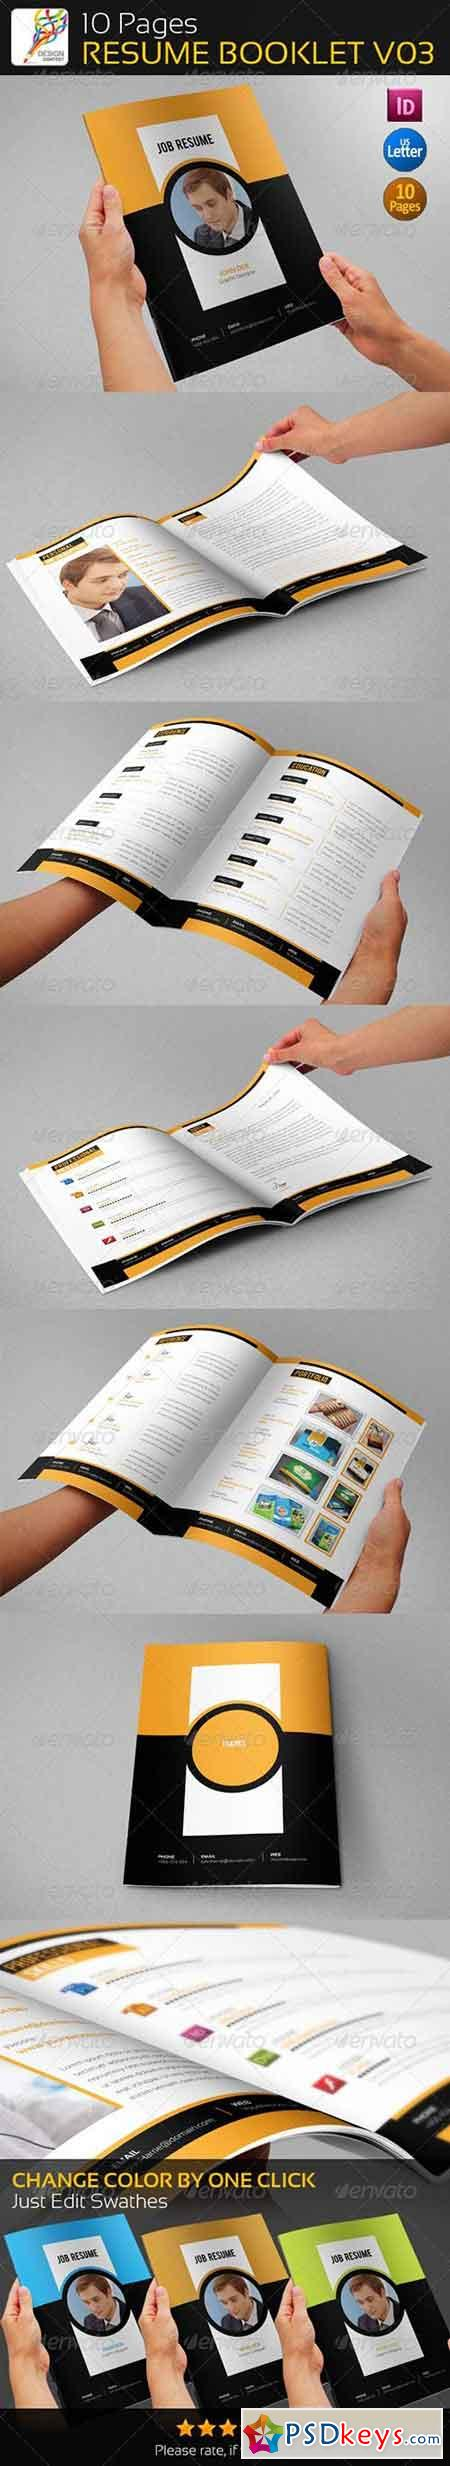 10 Pages Professional Resume Booklet V03 5424439